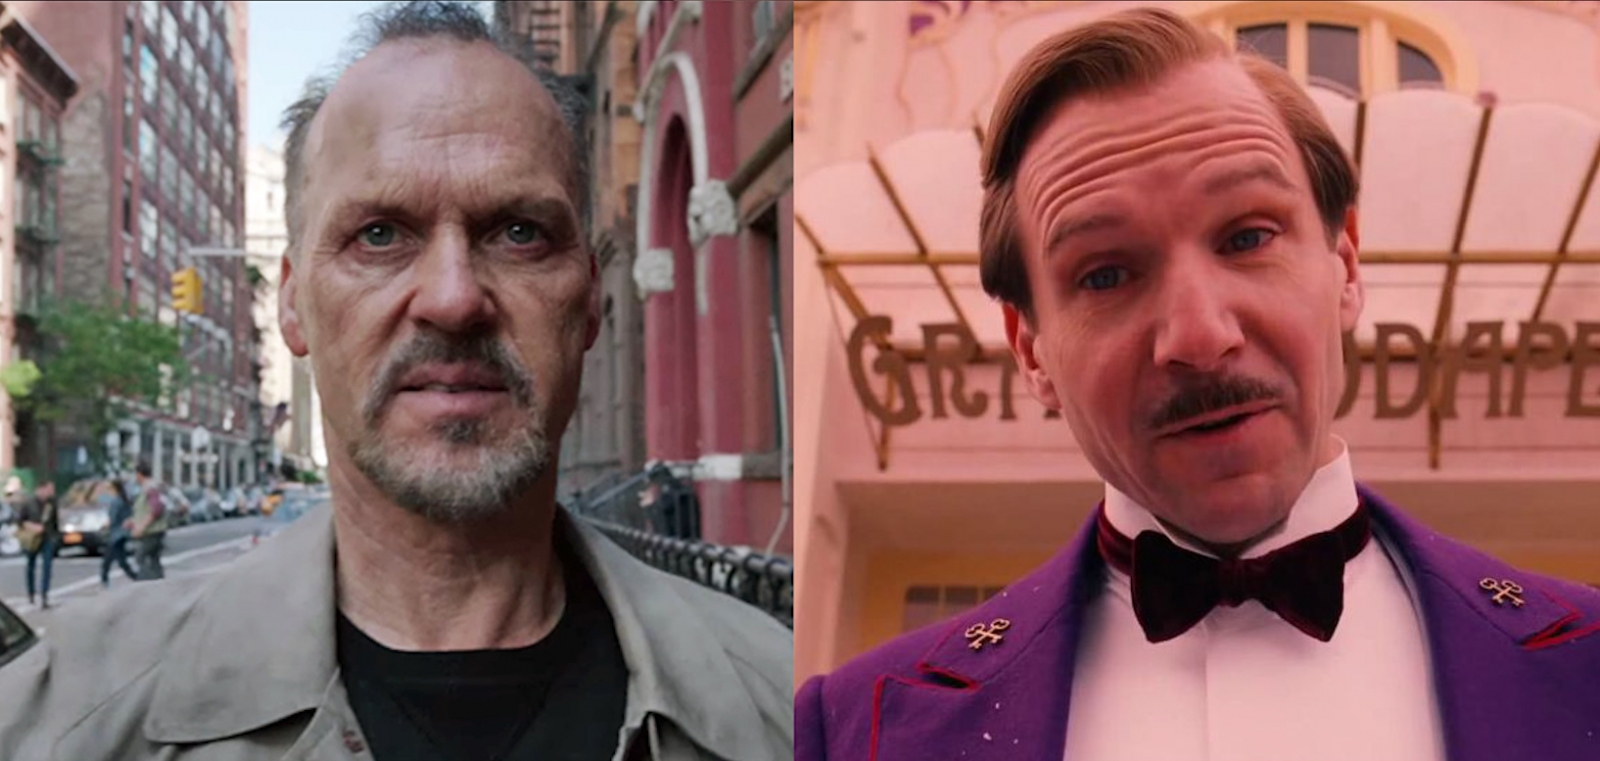 Oscars 2015: Birdman and The Grand Budapest Hotel lead with nine nominations